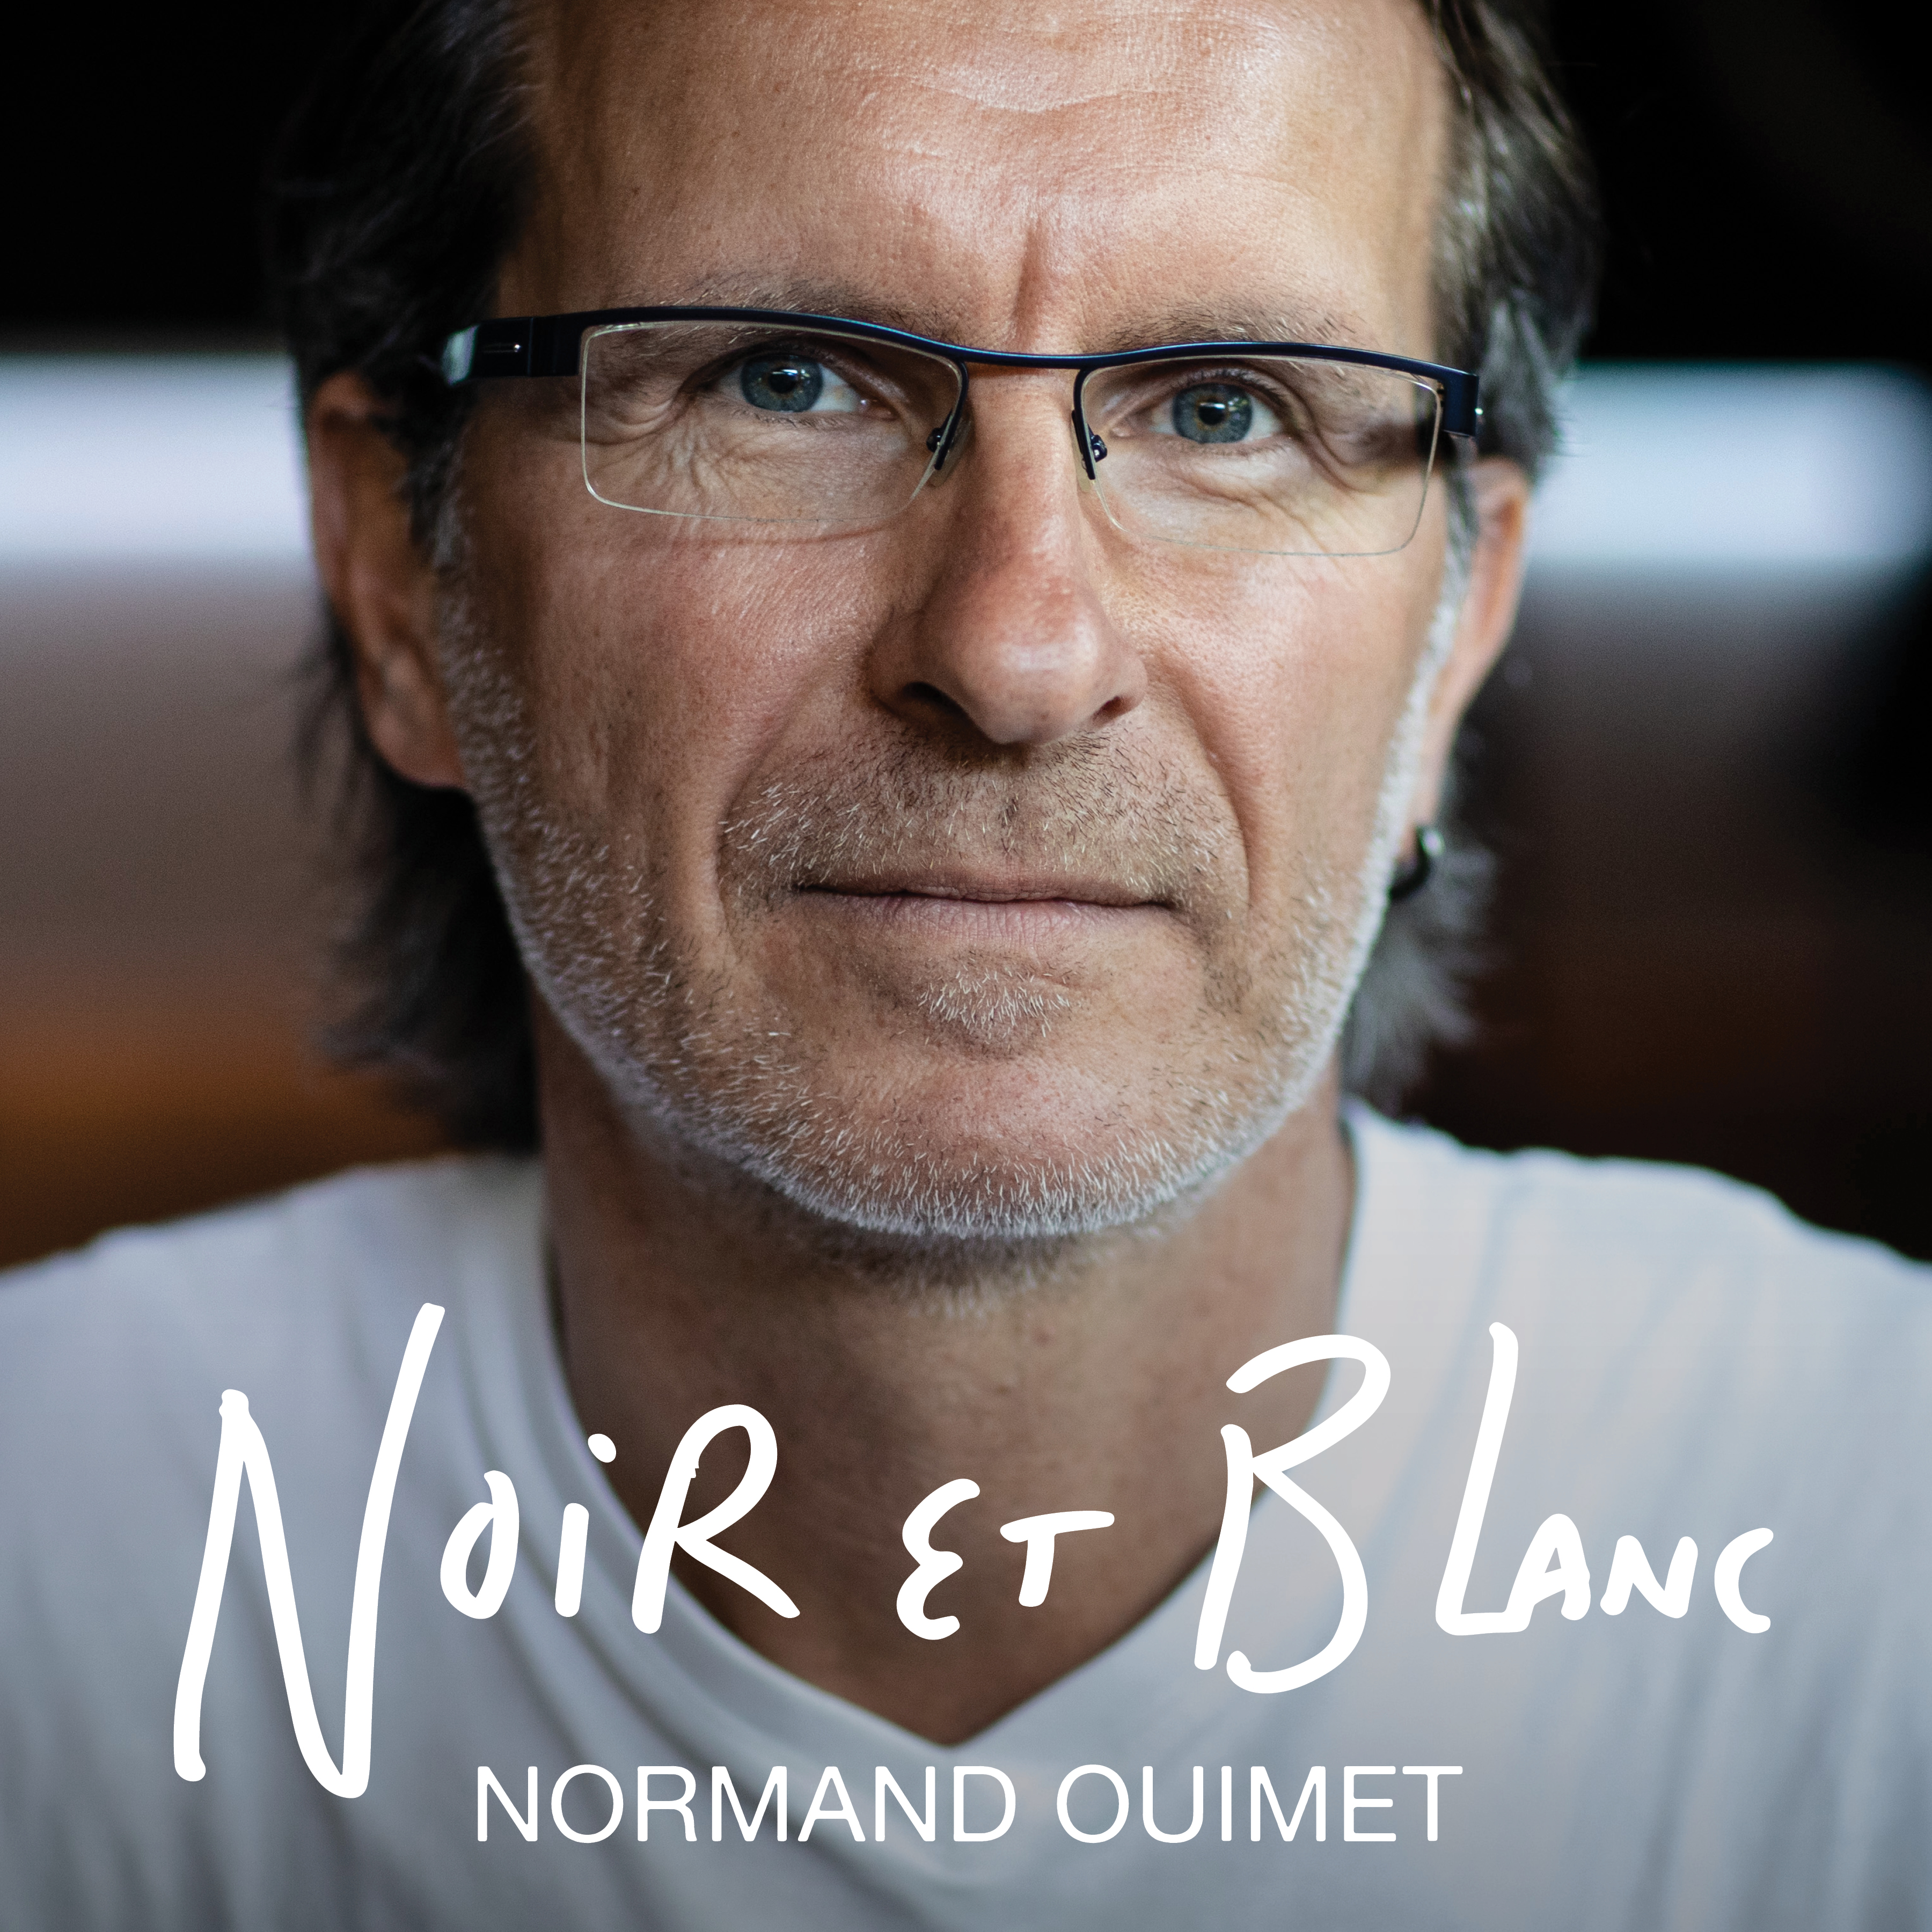 Normand Ouimet